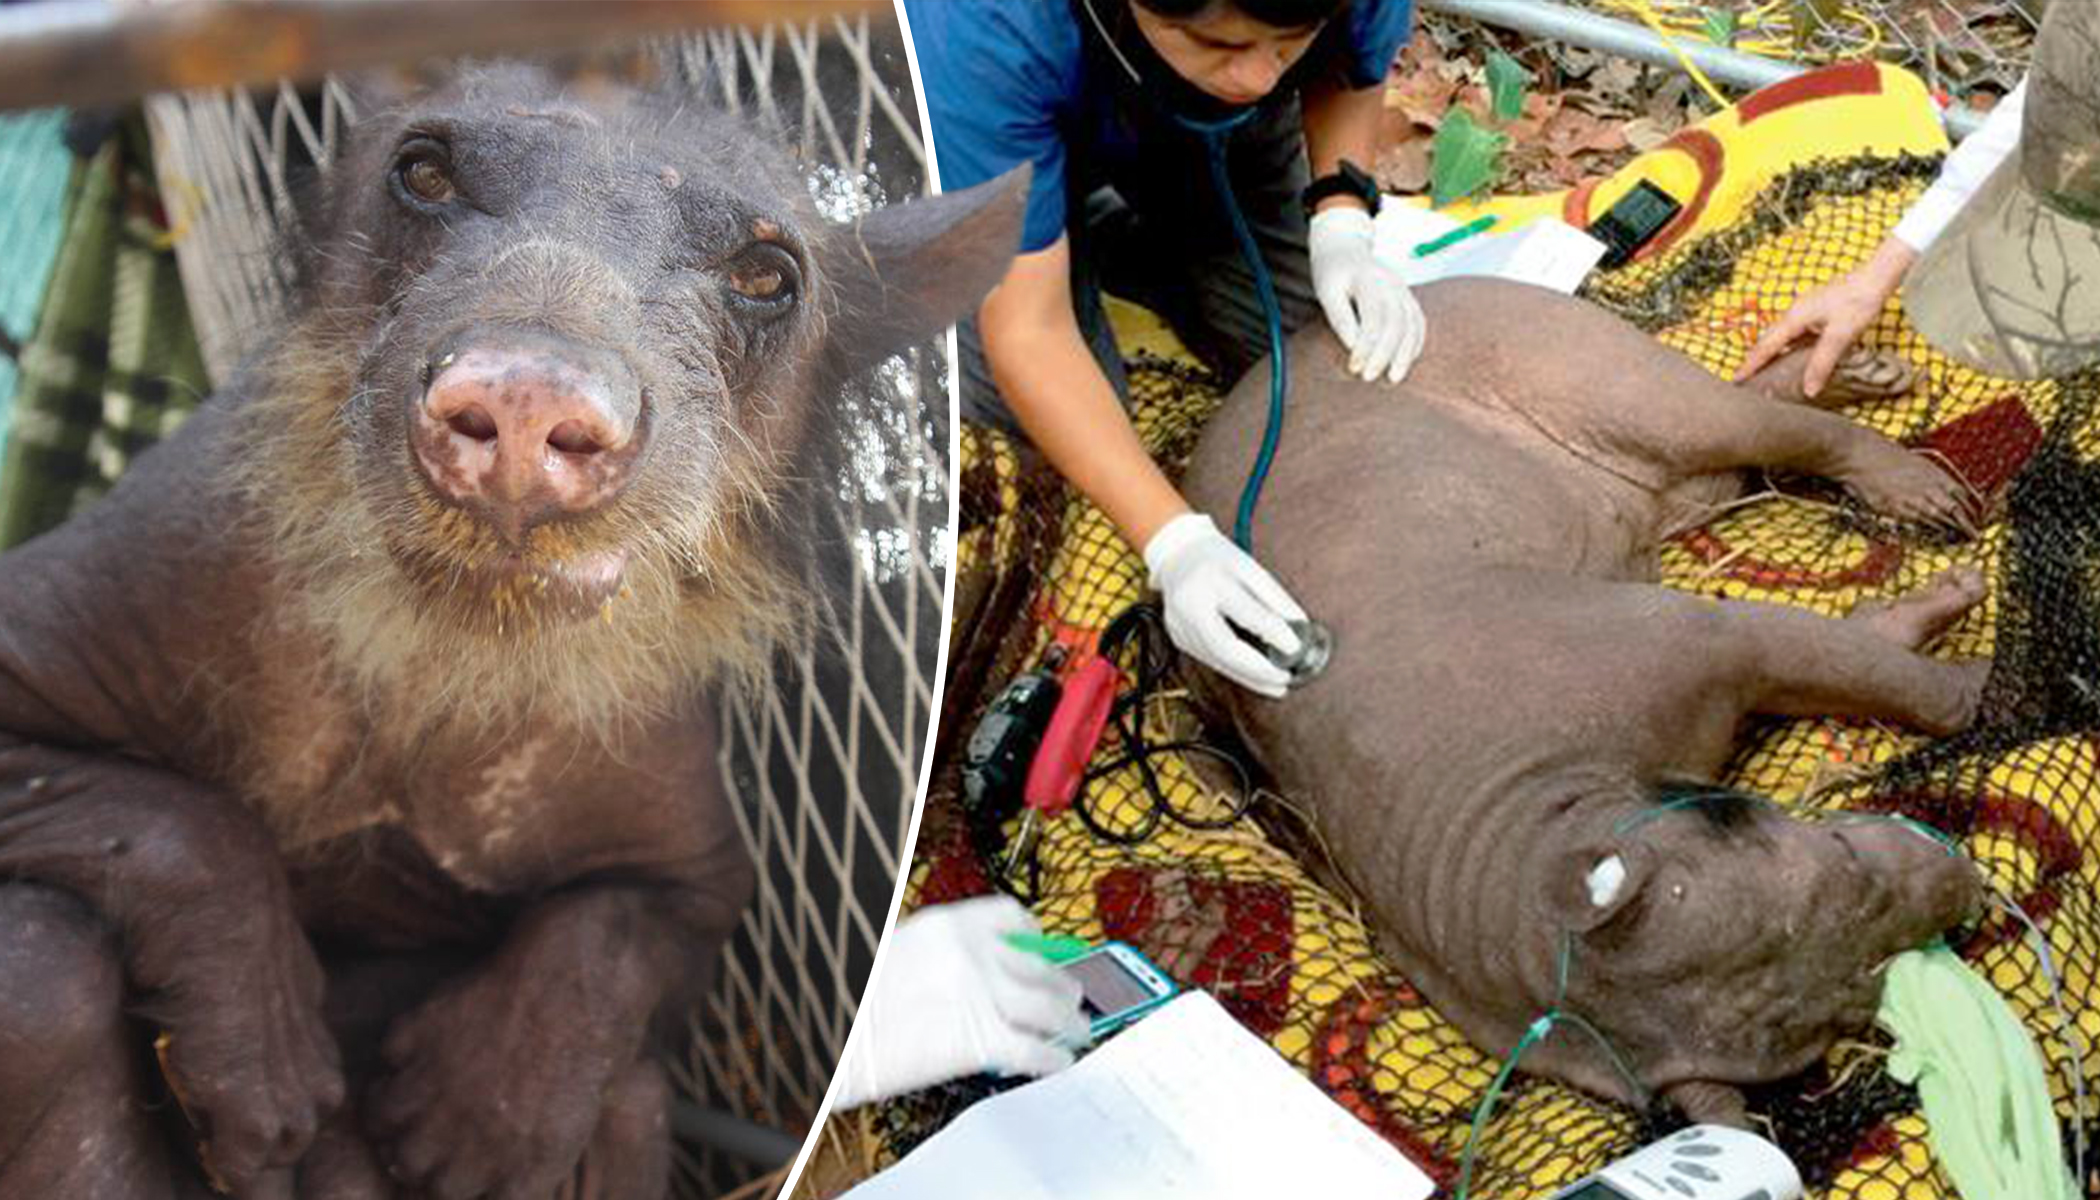 Circus Bear Went Bald From Stress and Had Toes Cut Off, Now Witness Her Joyful Rescue